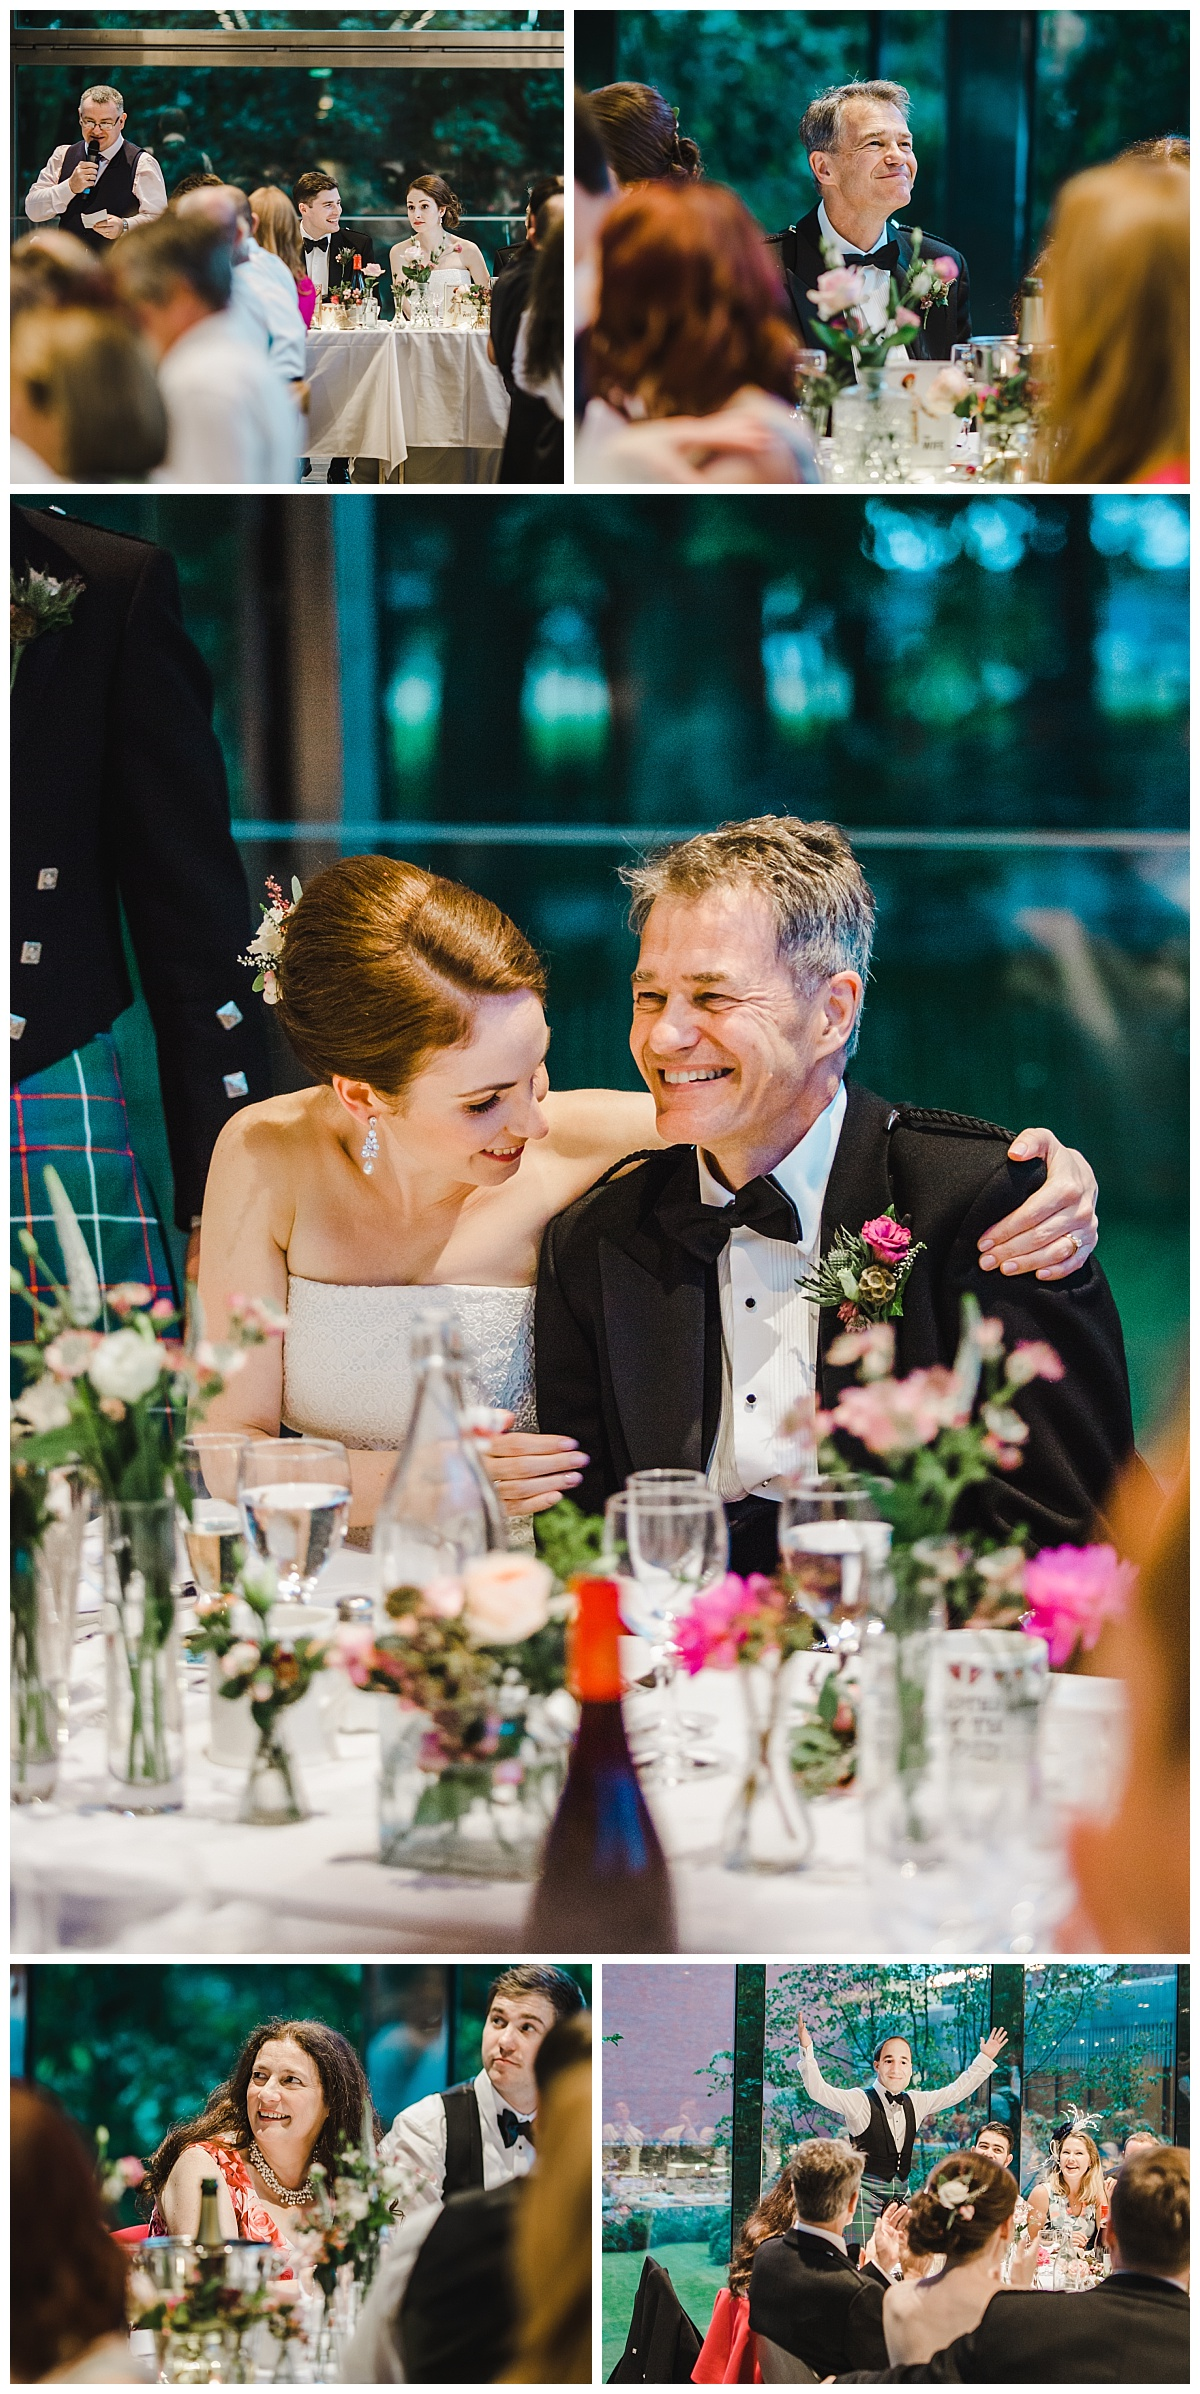 speeches and guests at Whitworth Art Gallery wedding